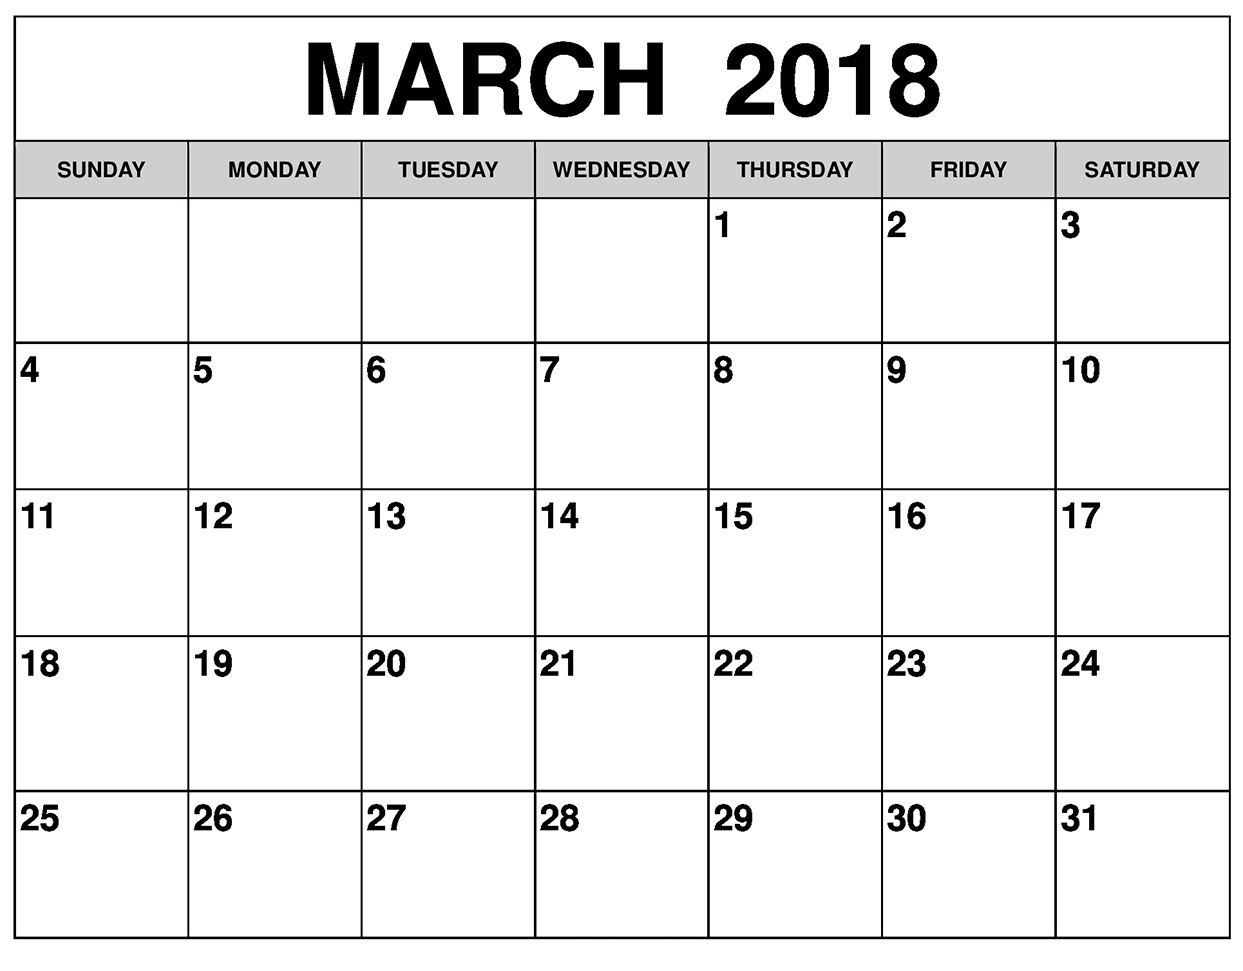 Monthly March Calendar 2018